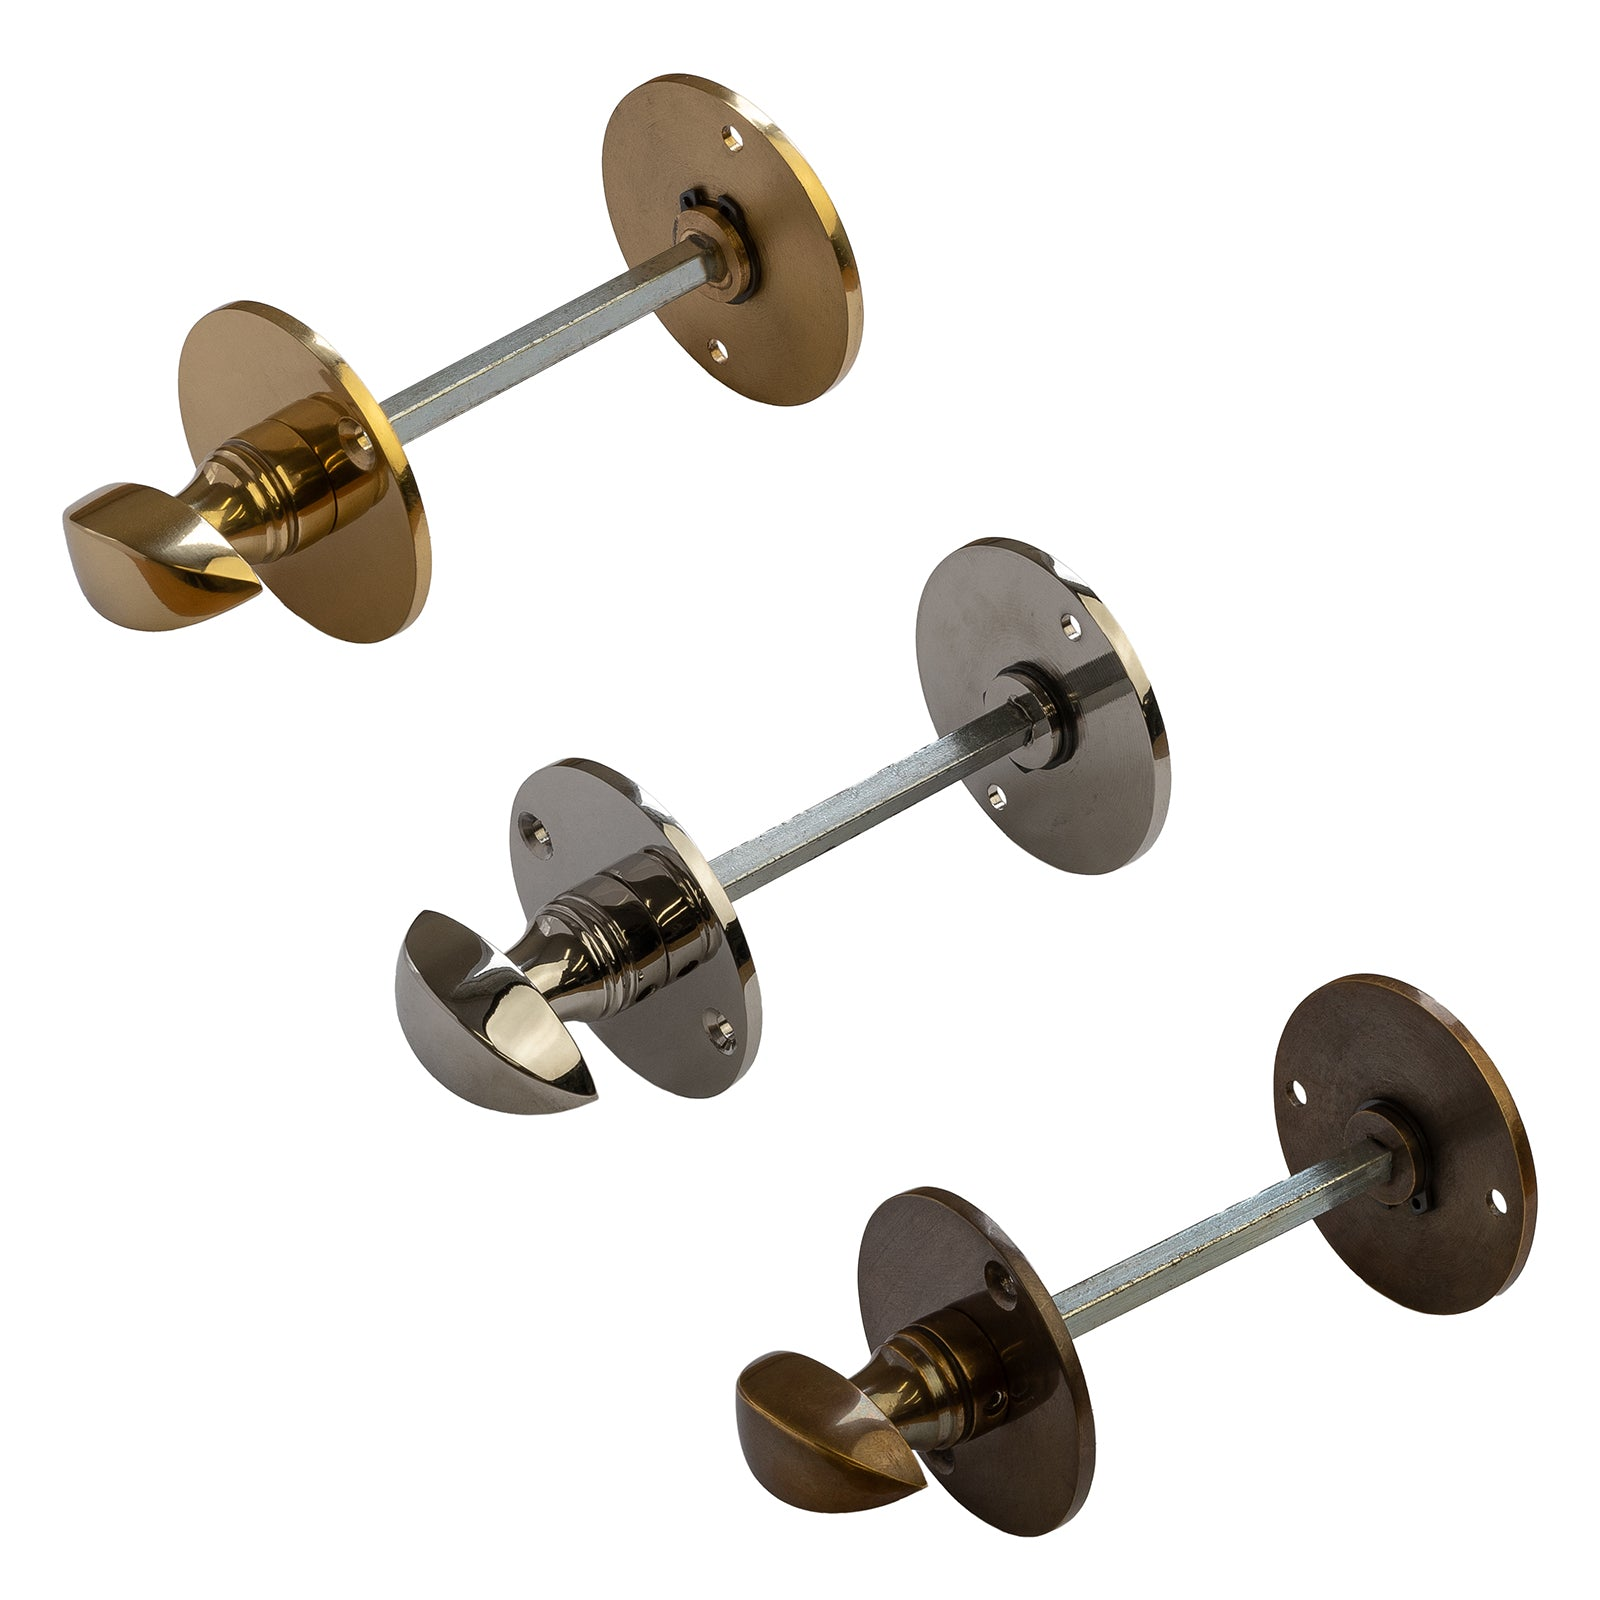 Bathroom Turn & Release with Smooth Finish in Brass, Nickel and Bronze Finishes